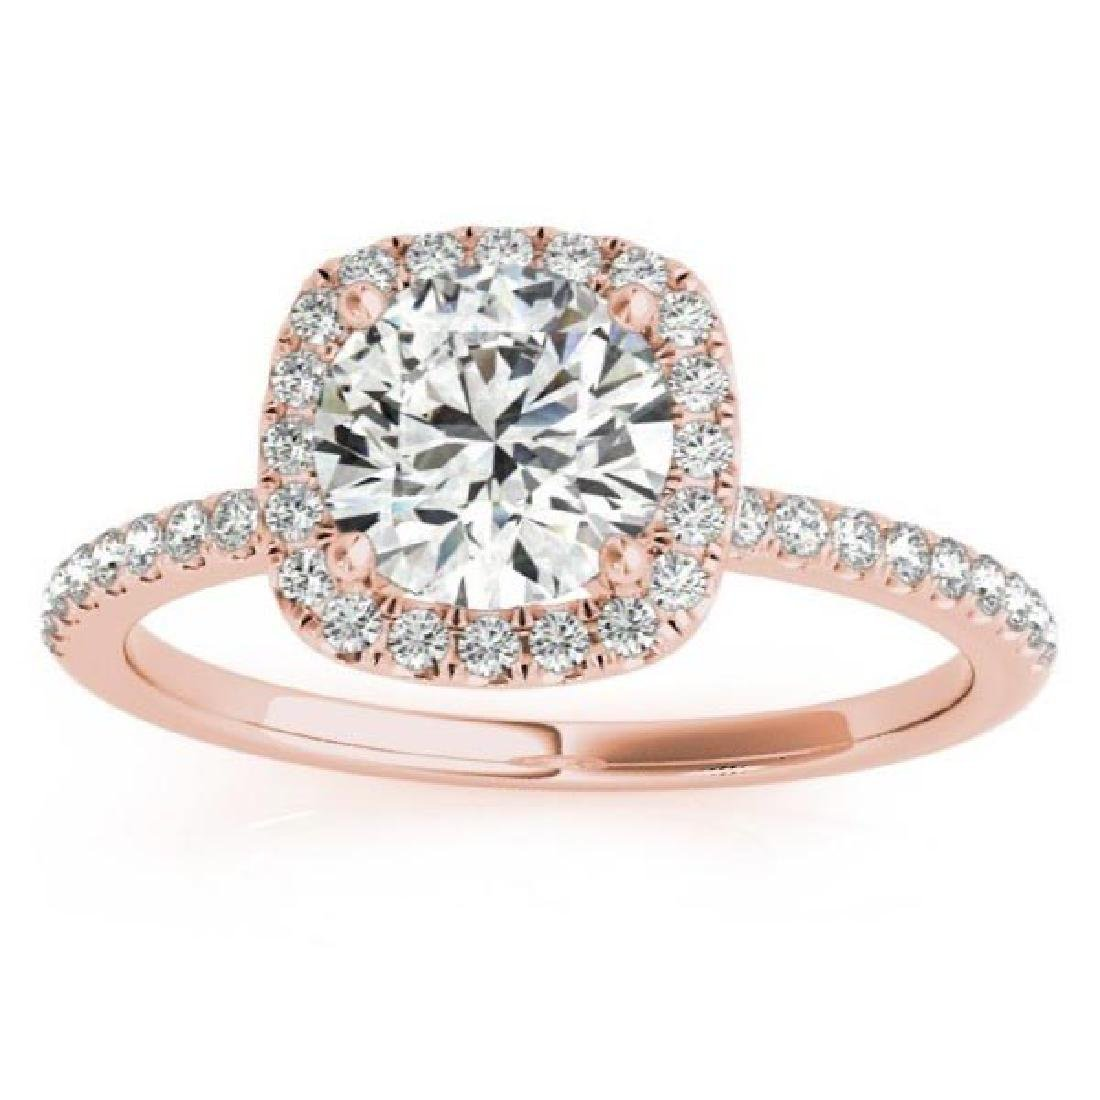 Square Halo Diamond Engagement Ring Setting in 14k Rose